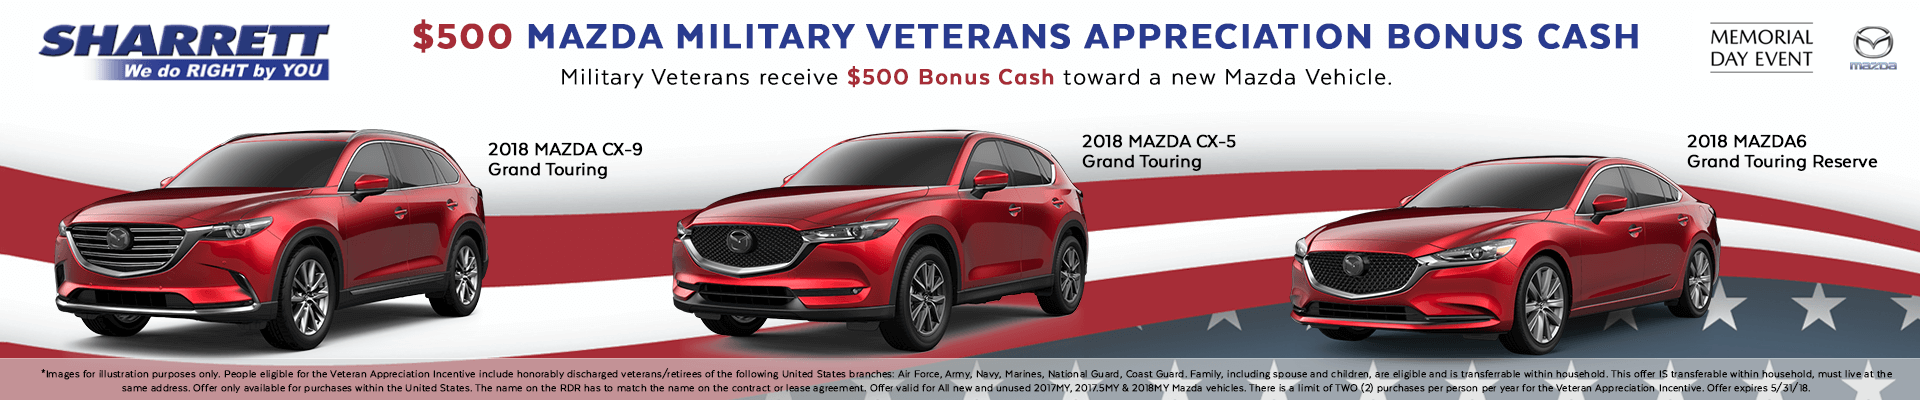 Mazda Military Appreciation Bonus